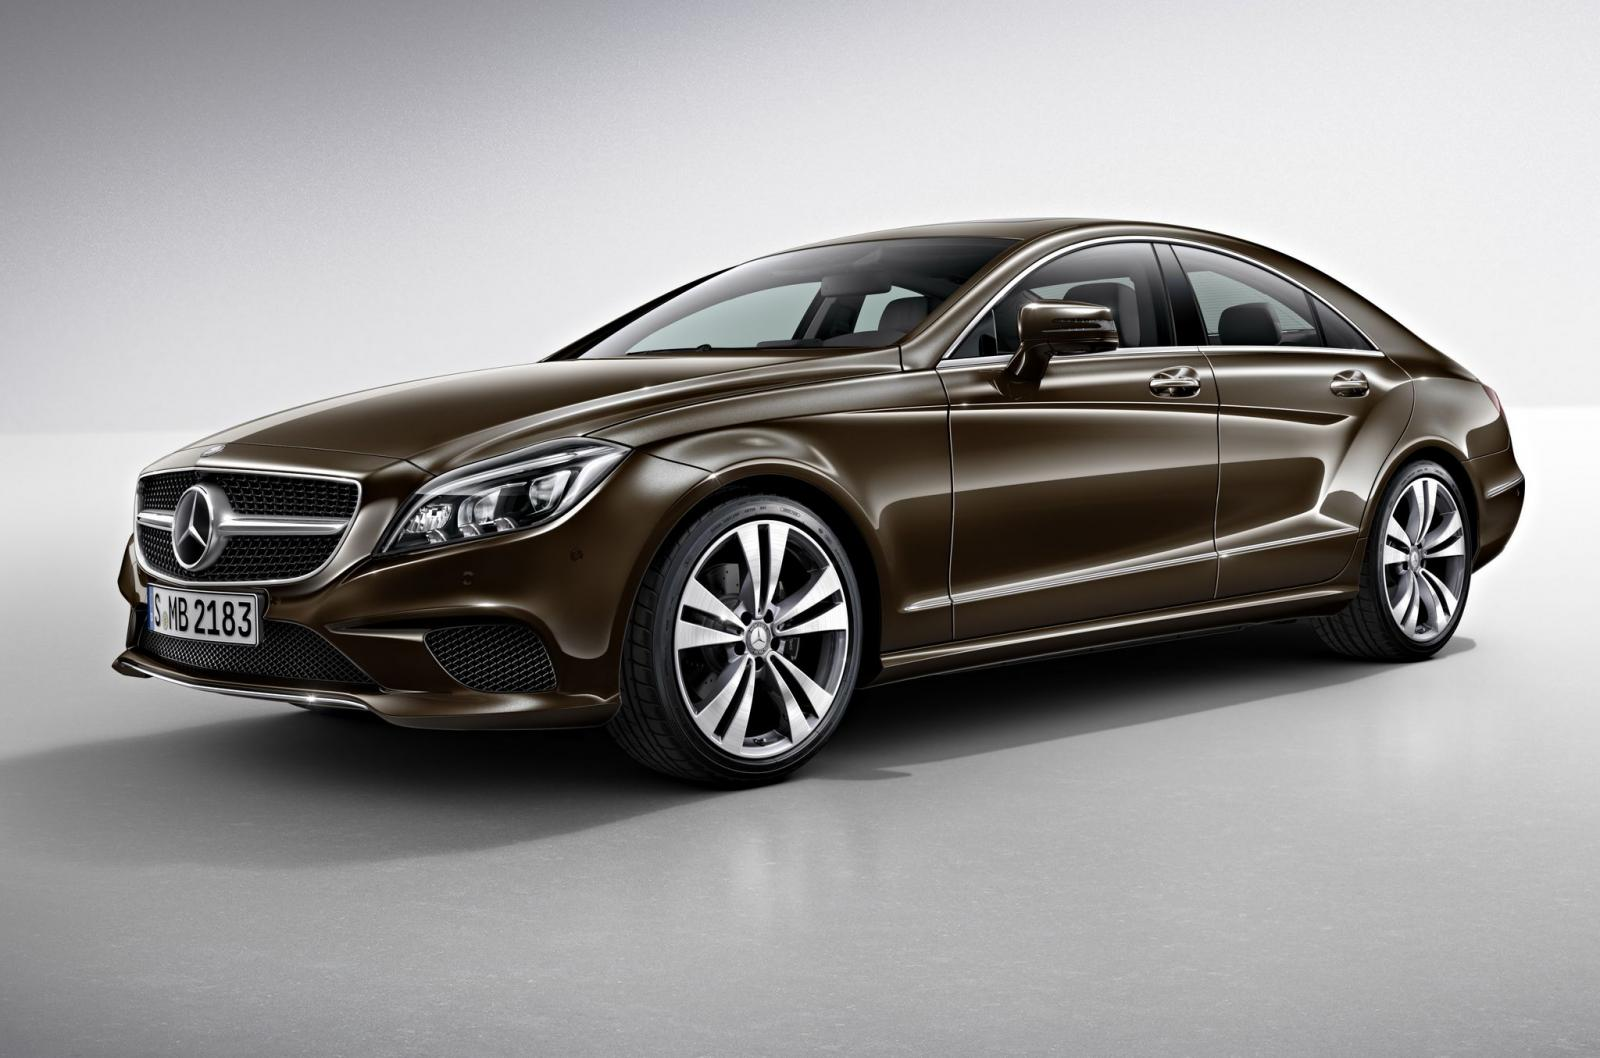 2015 mercedes benz cls sport and night packages. Black Bedroom Furniture Sets. Home Design Ideas